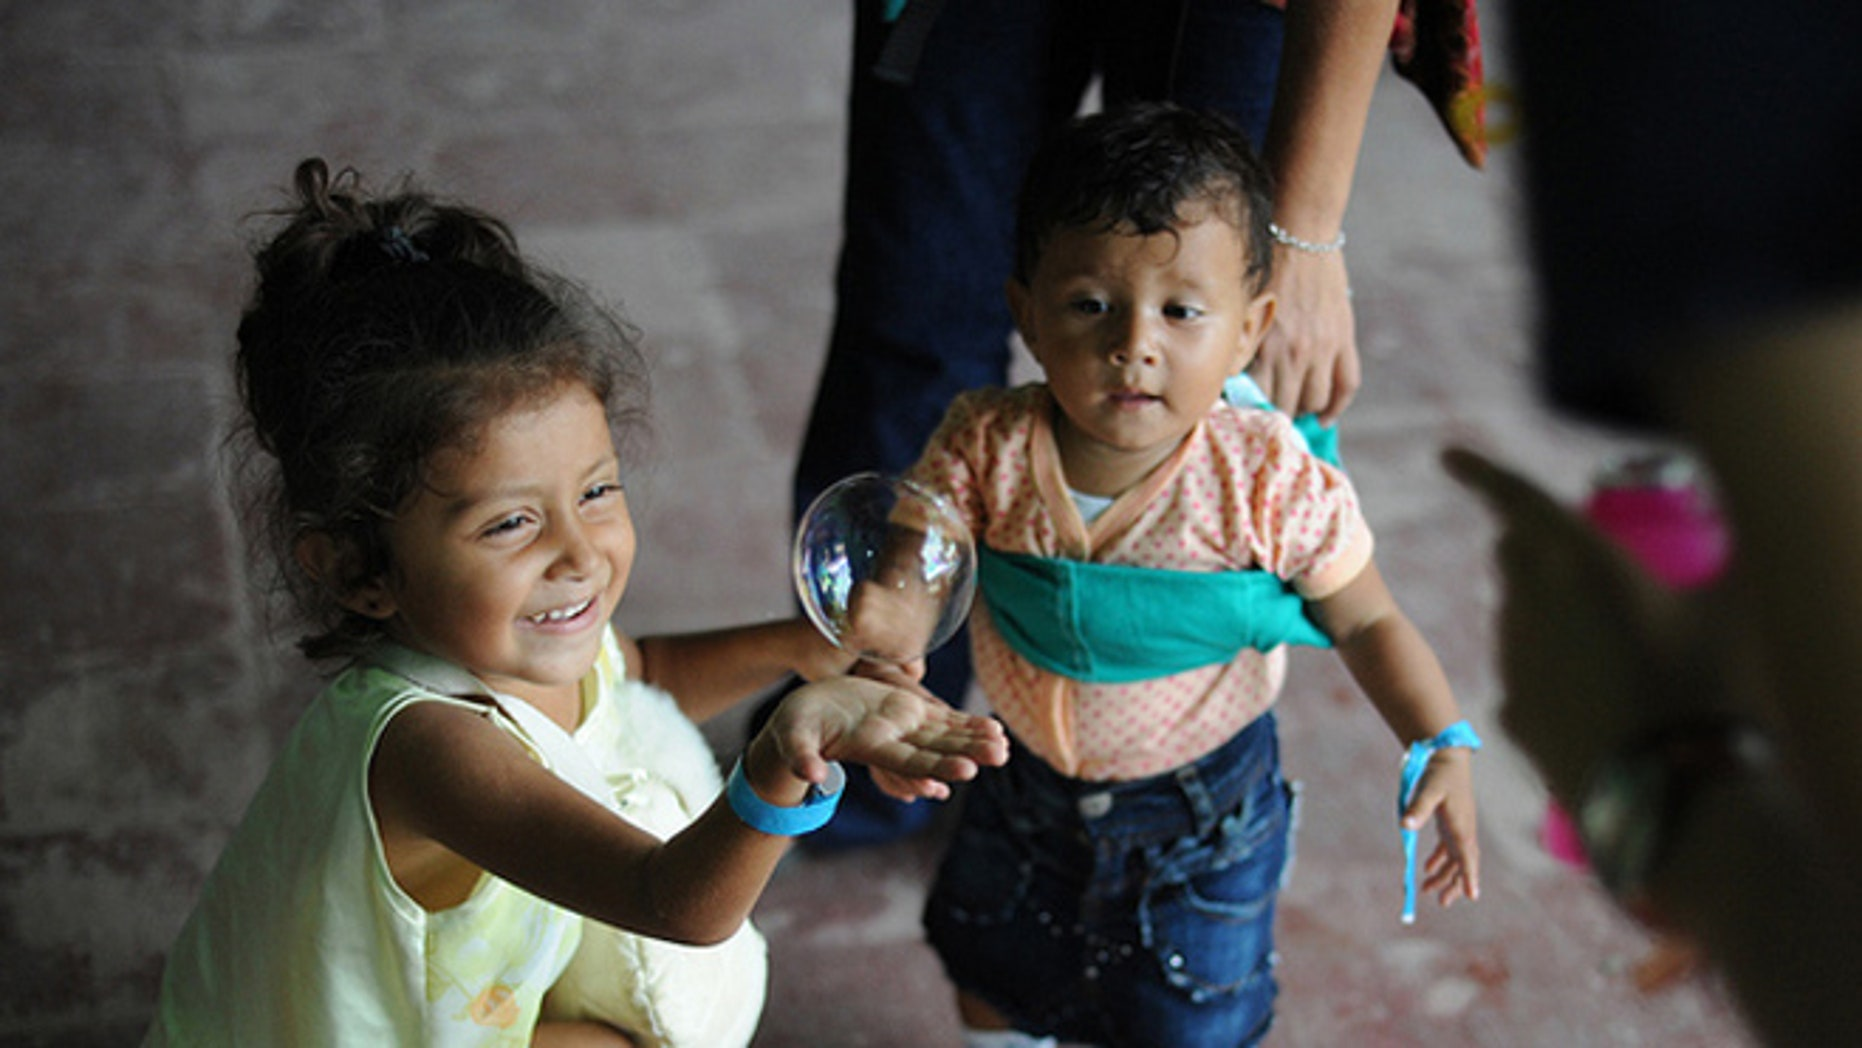 Children chase bubbles outside the family medicine exam room during a Continuing Promise 2011 medical community service event Las Morenas medical site in Puerto San José, Guatemala. (U.S. Navy photo by Mass Communication Specialist 2nd Class Eric C. Tretter/Released)